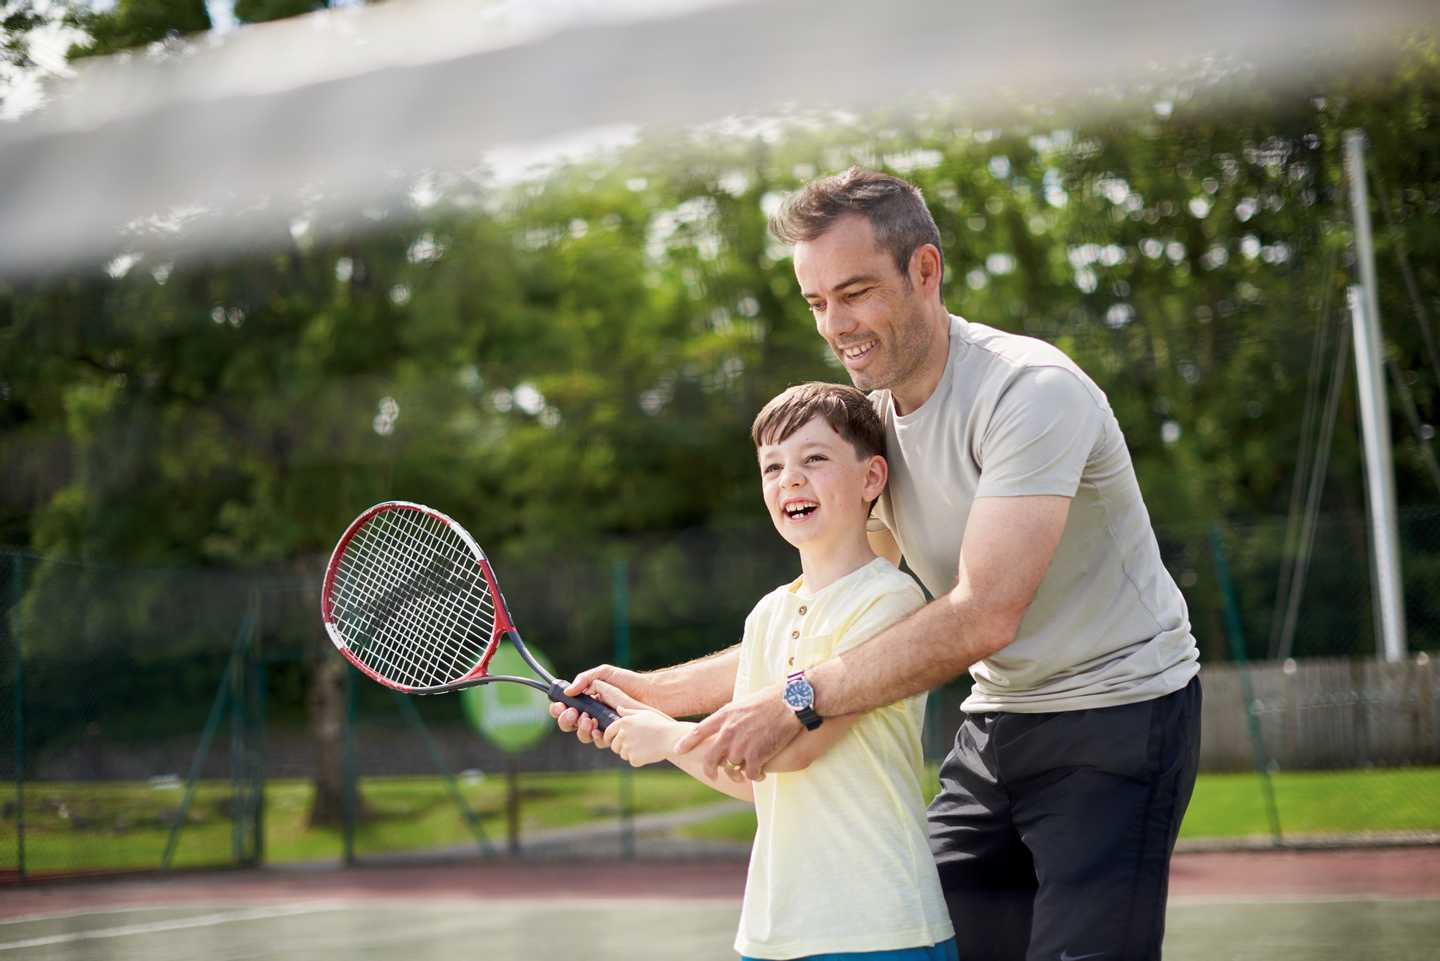 A father helping his son play tennis